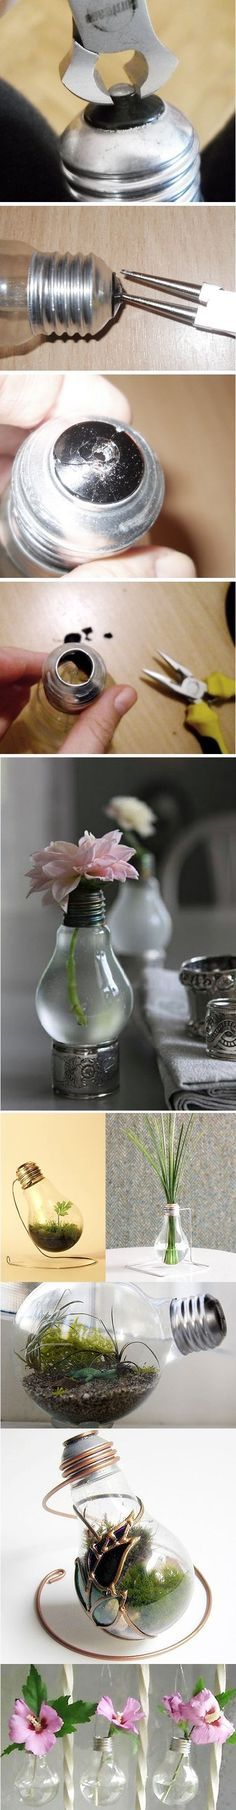 DIY Project: Recycled Light Bulbs by Michelle Winter (diy projects glass jars) Diy Projects To Try, Crafts To Do, Craft Projects, Arts And Crafts, Easy Crafts, Easy Diy, Recycled Light Bulbs, Light Bulb Crafts, Creation Deco